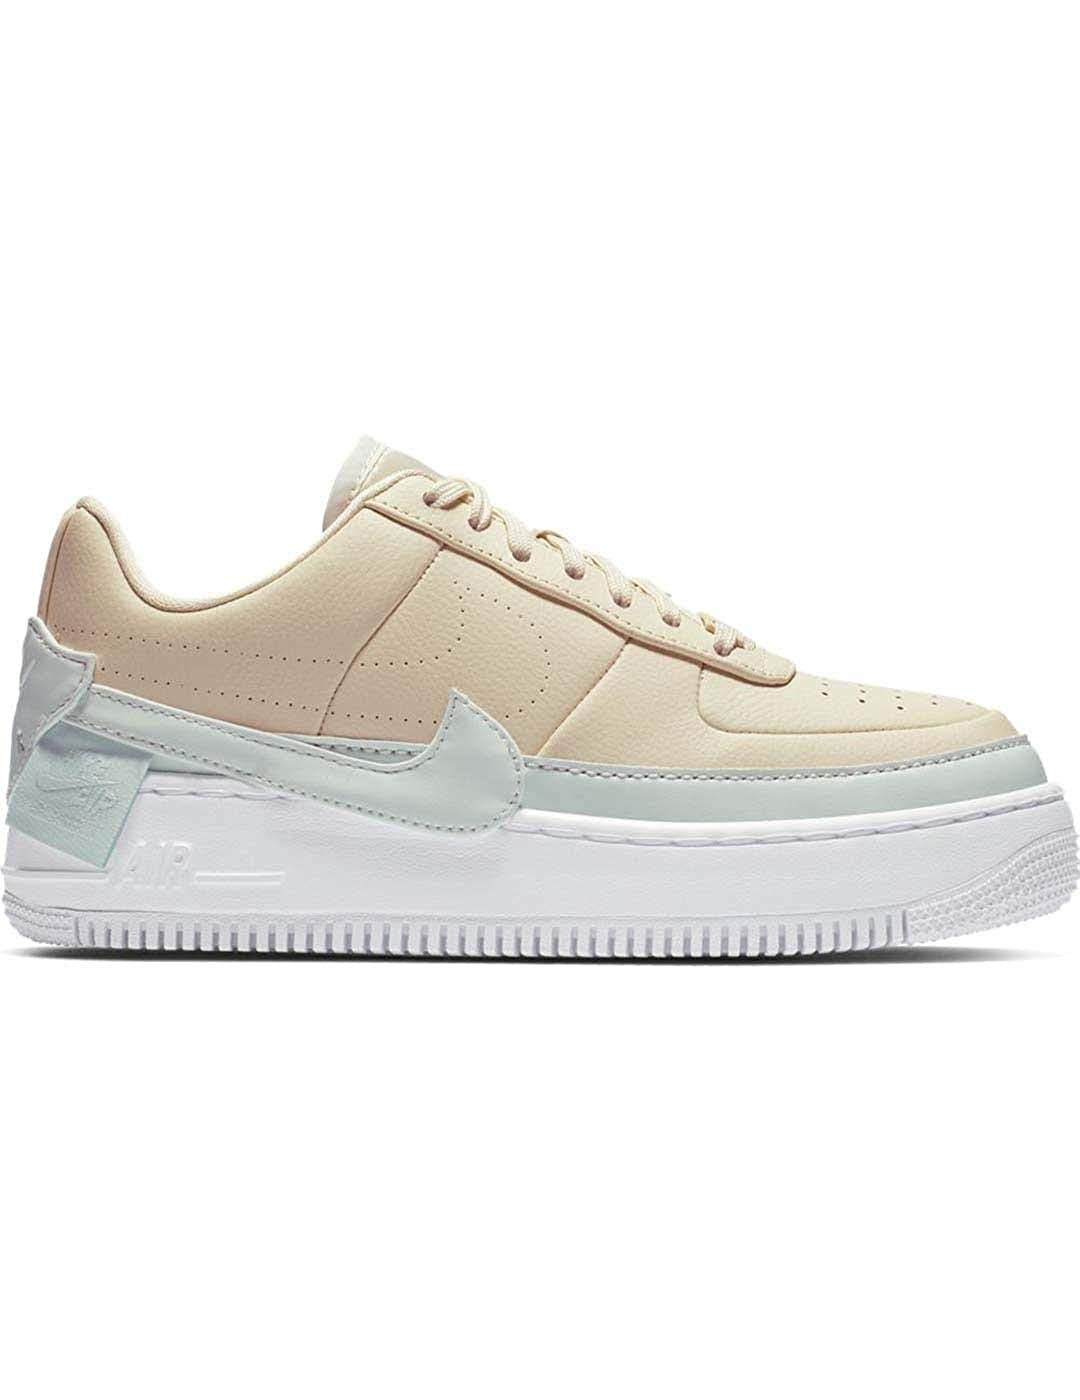 3c954b7b1ad Nike Women's Air Force 1 Jester XX